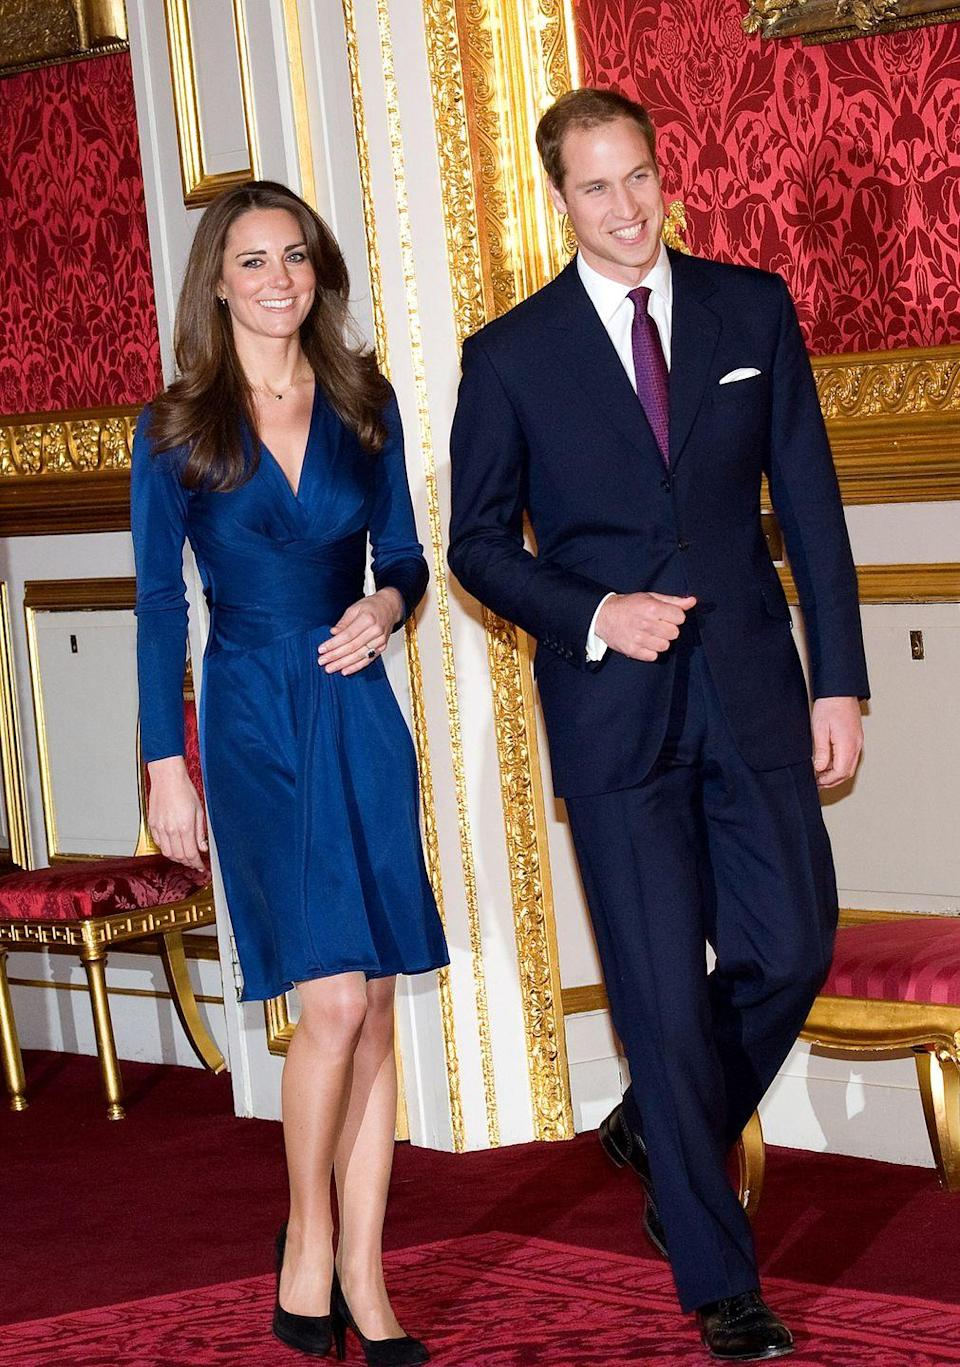 <p>You've definitely seen this look before—it's the same one Kate wore to announce her engagement to Prince William back in 2010. </p>